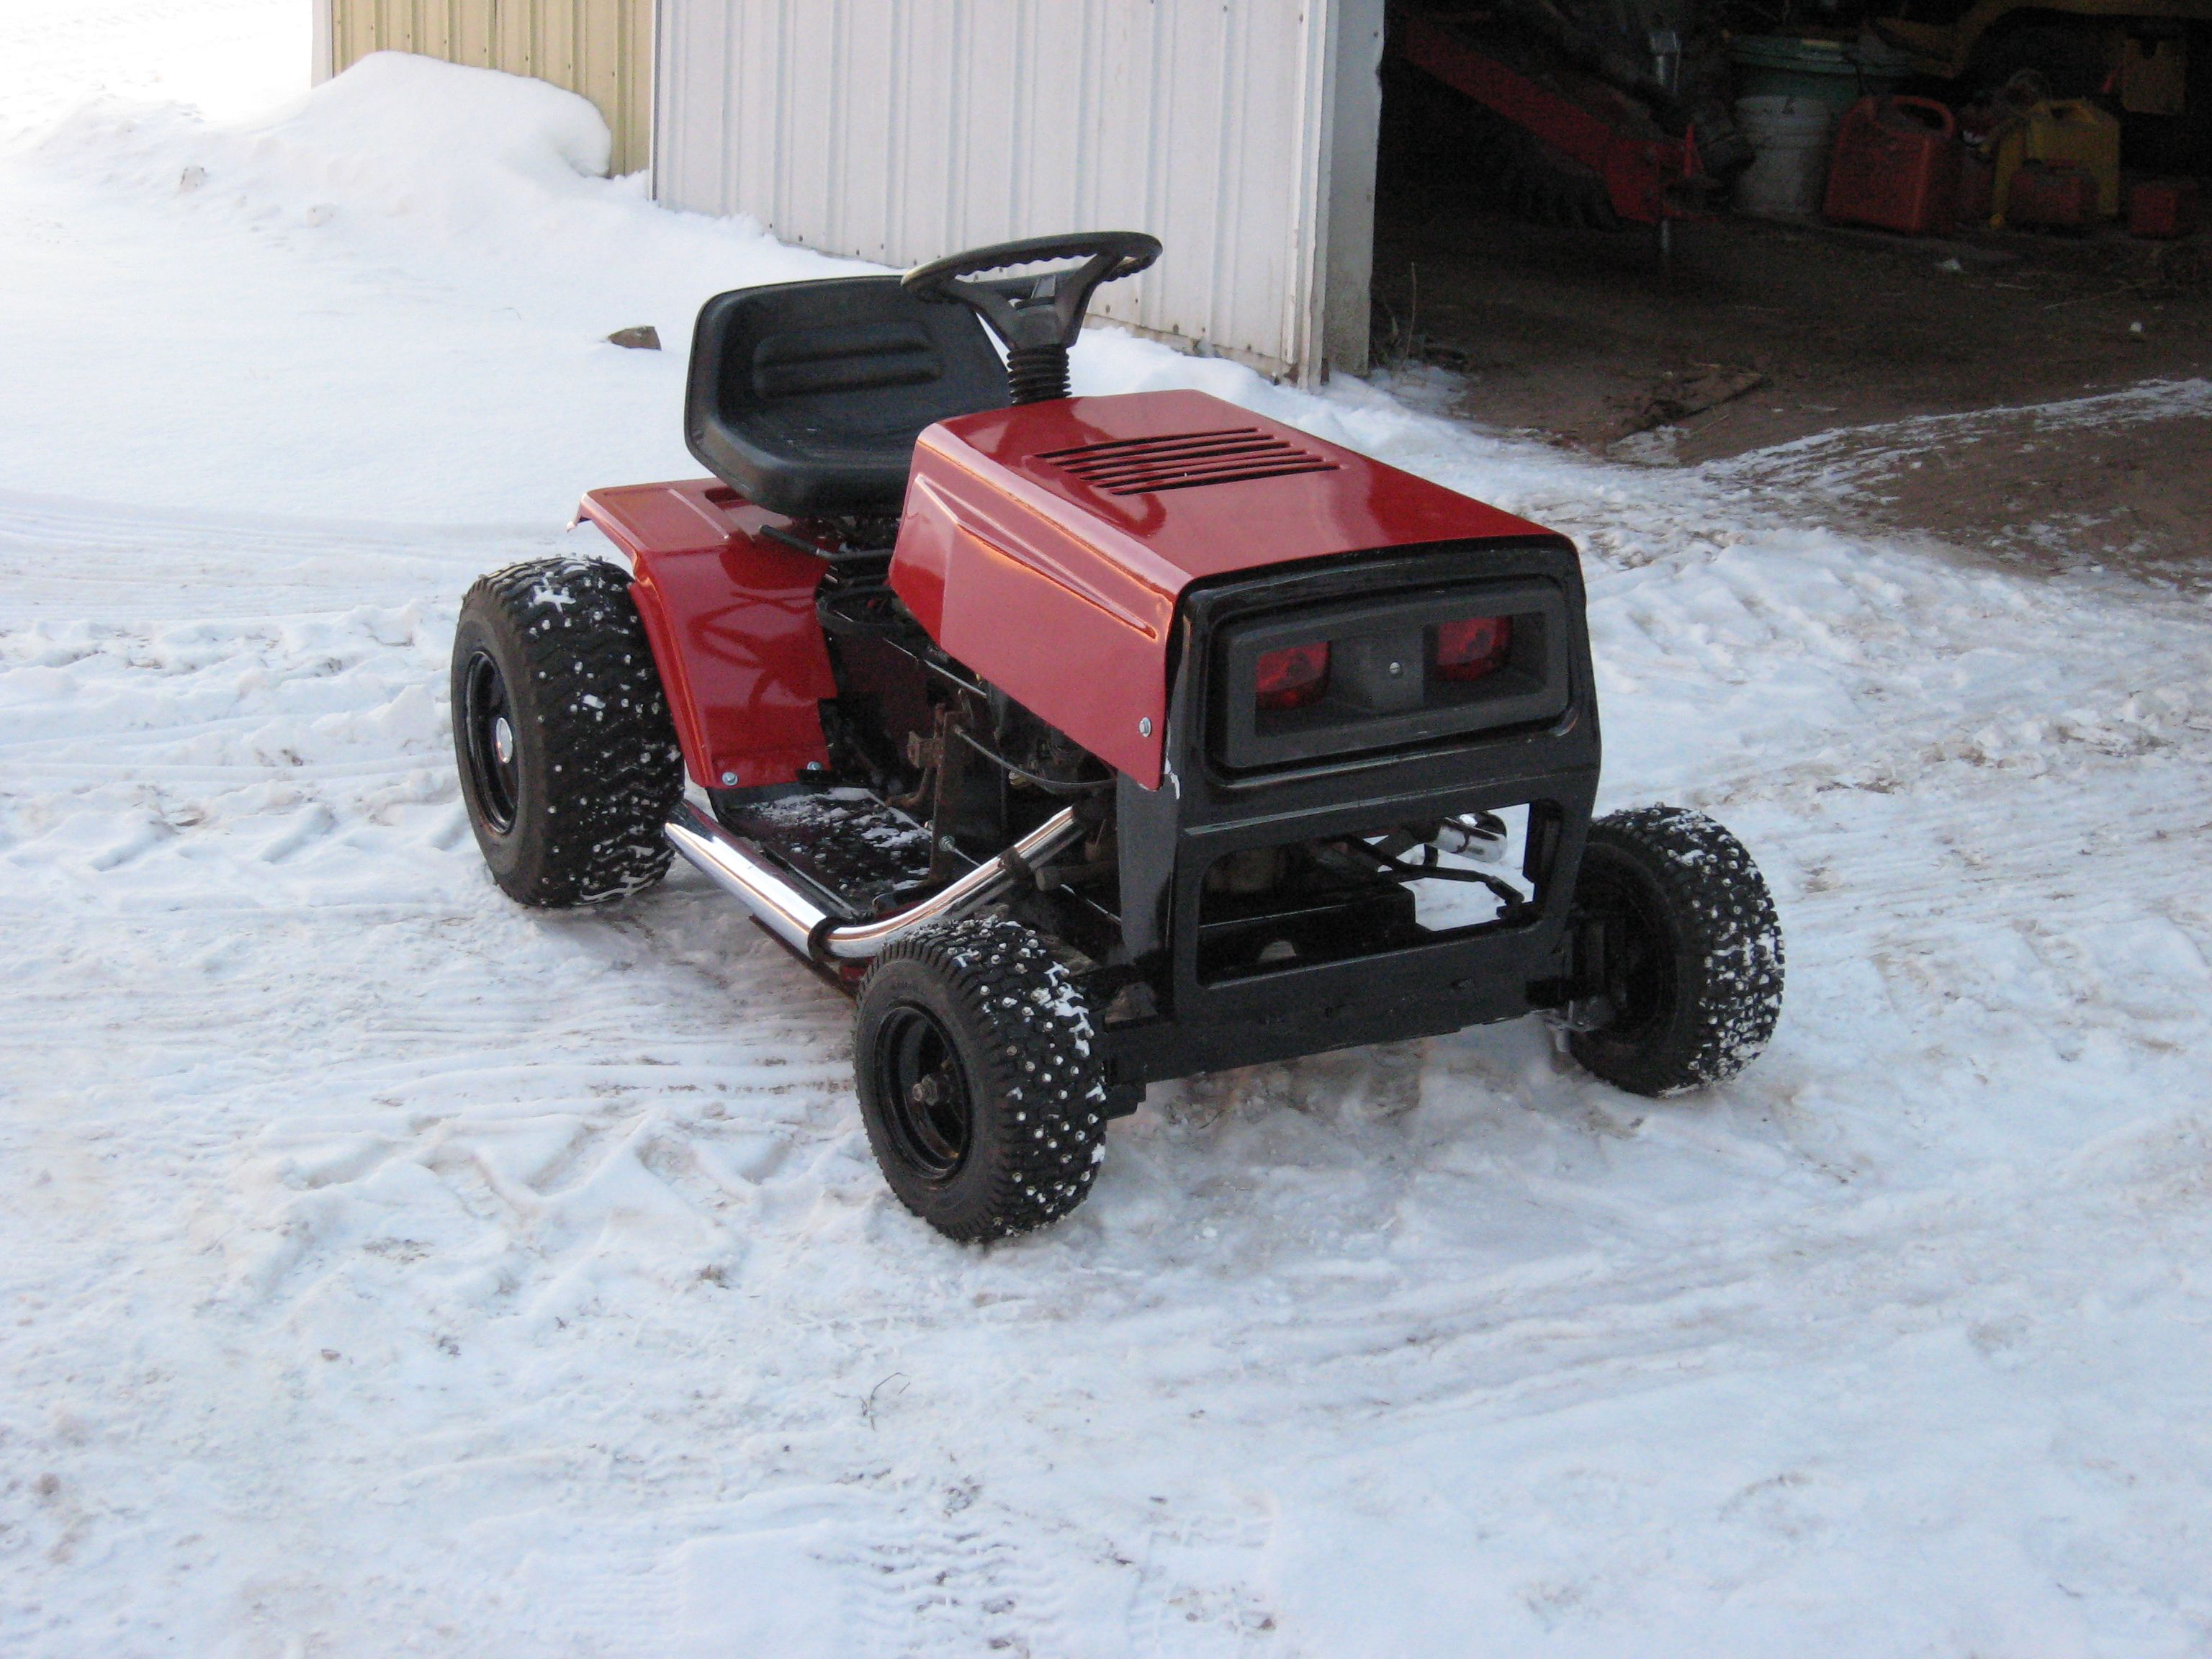 Custom Racing Tractors : My racing lawn mower after getting painted builds